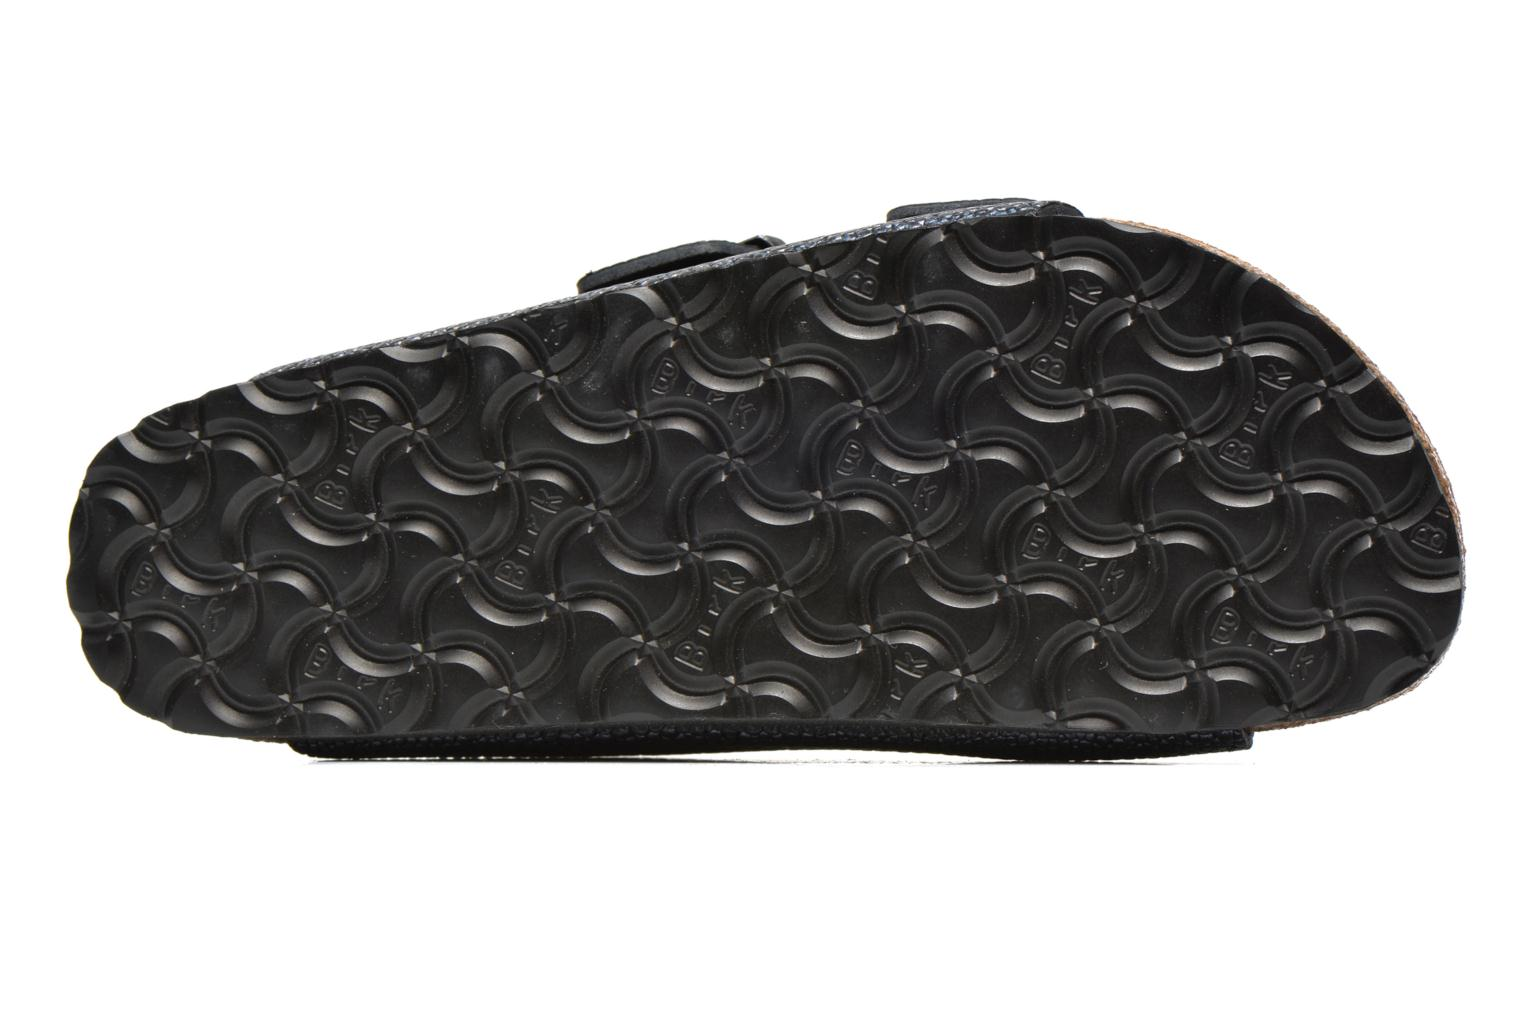 Arizona Cuir W Pebbles Metallic Asphalt